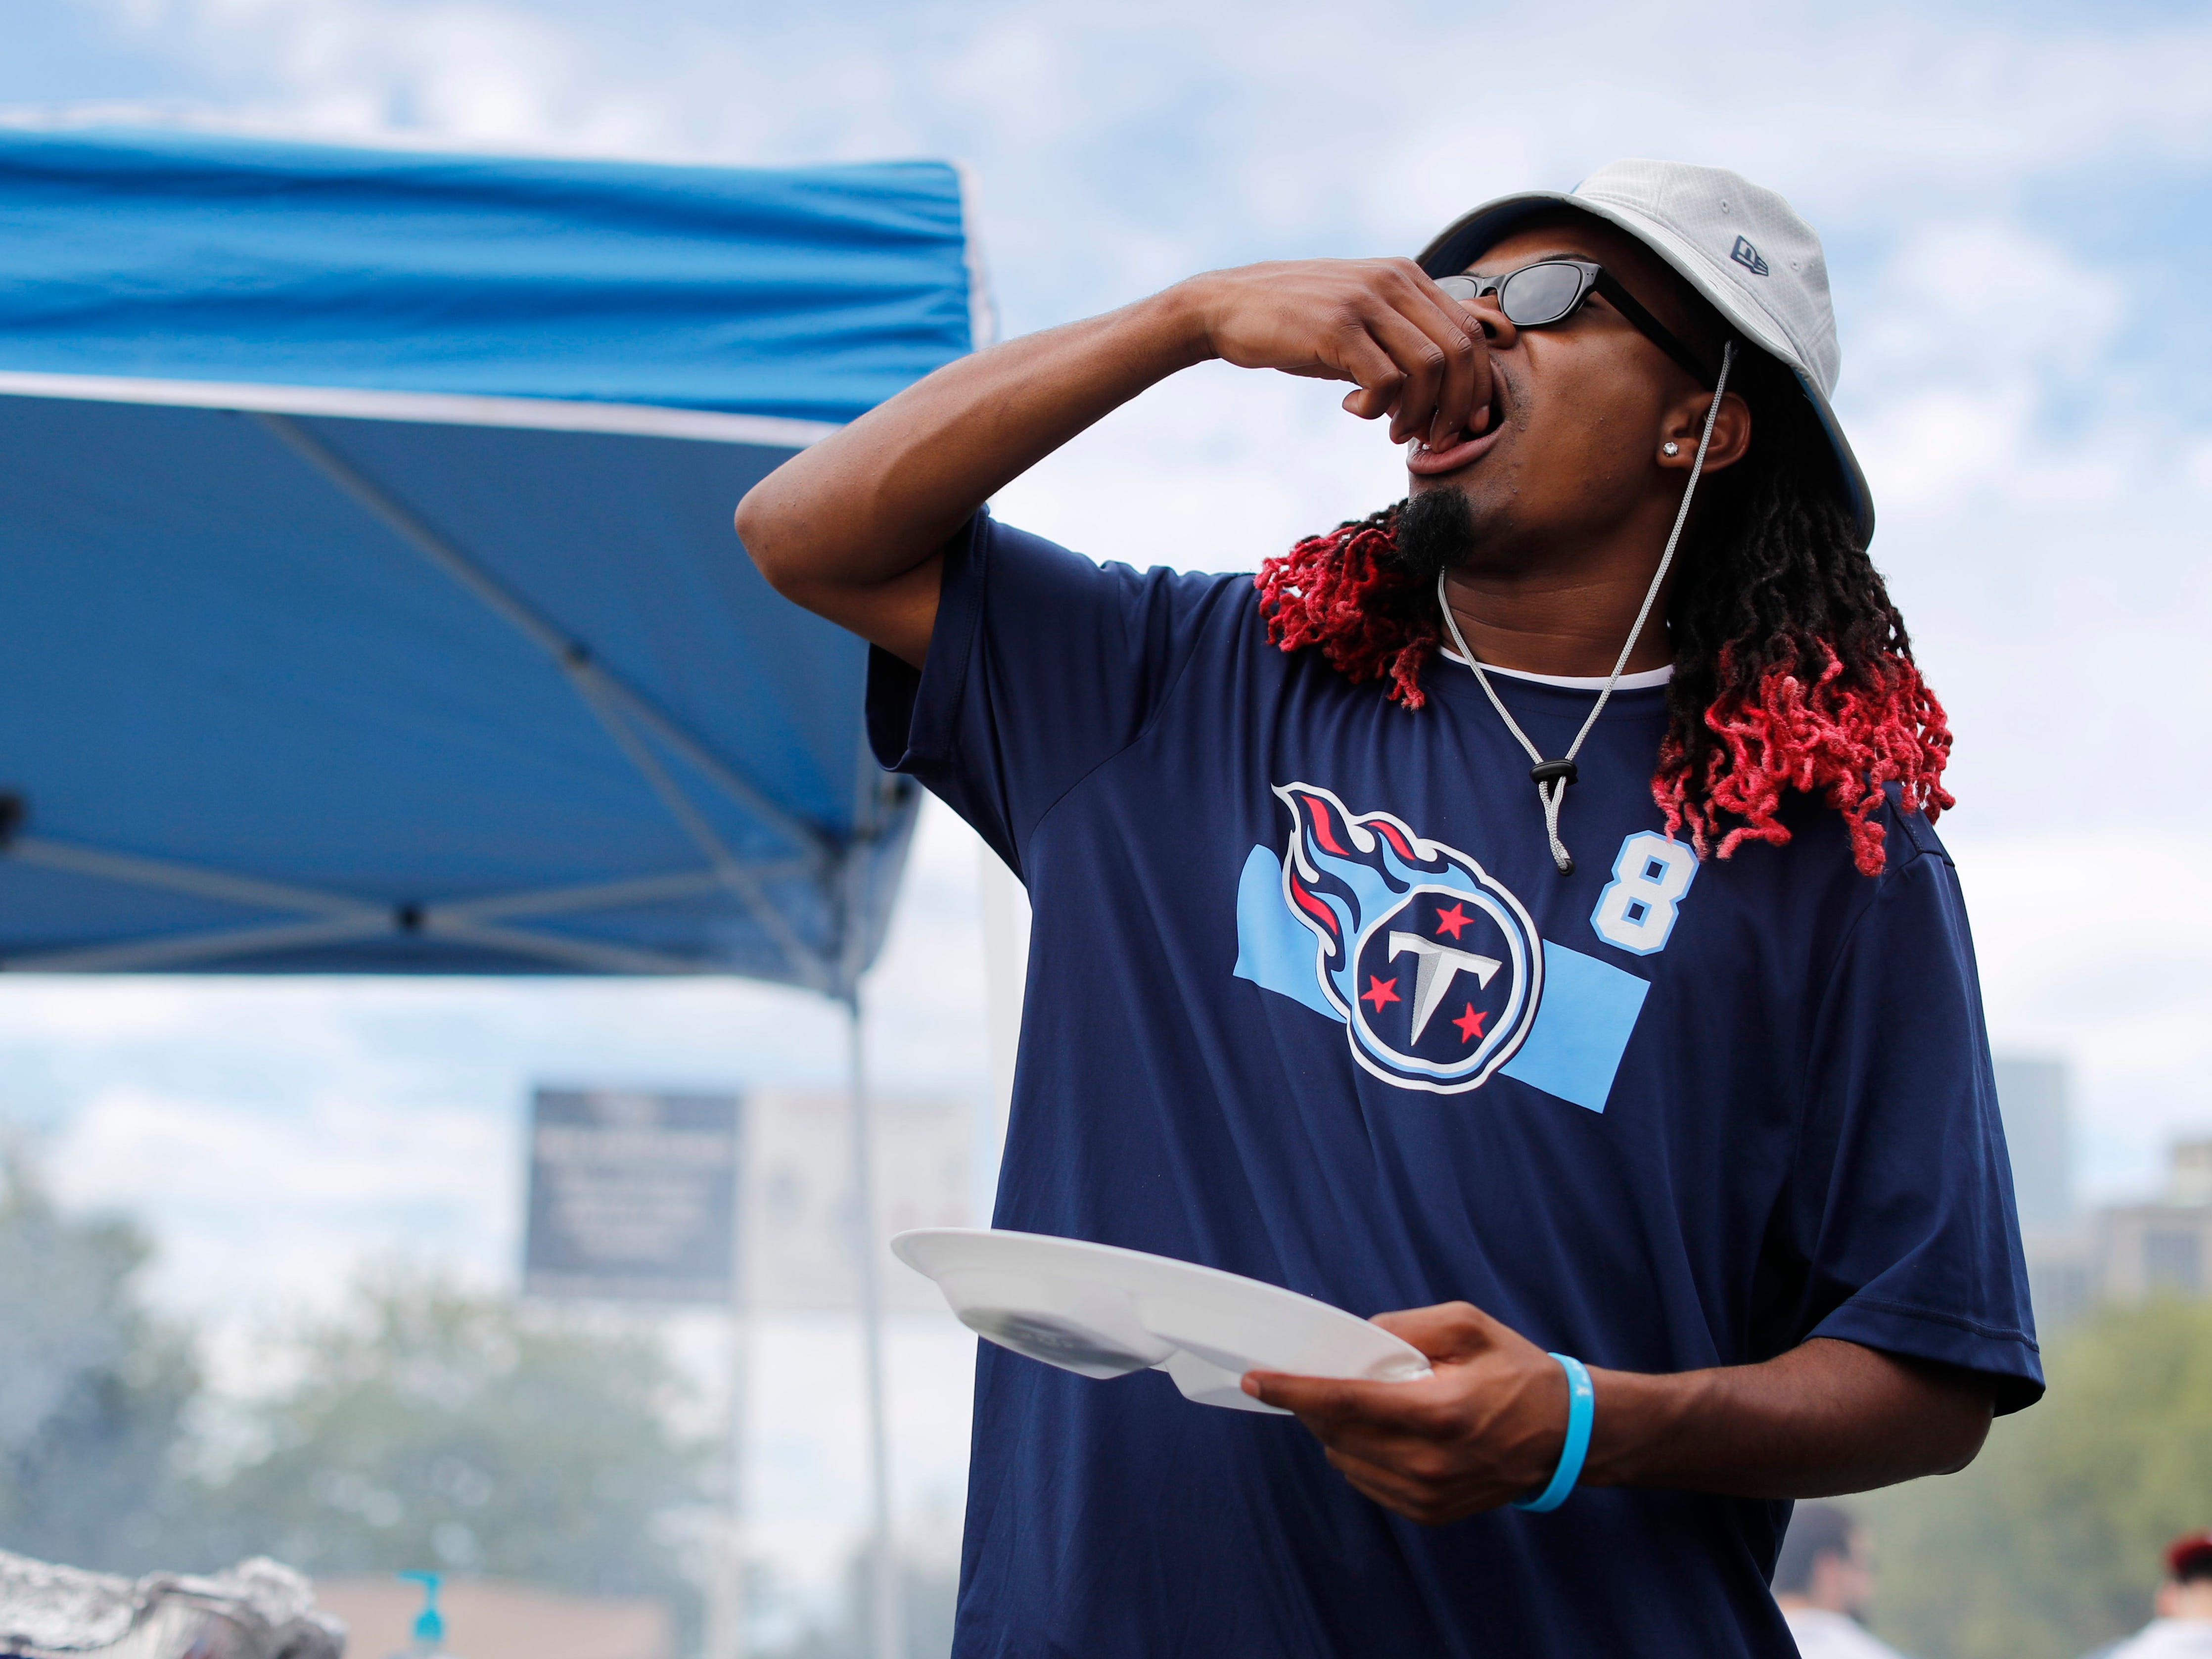 A Titans fan tailgates before the game against the Texans at Nissan Stadium Sunday, Sept. 16, 2018, in Nashville, Tenn.